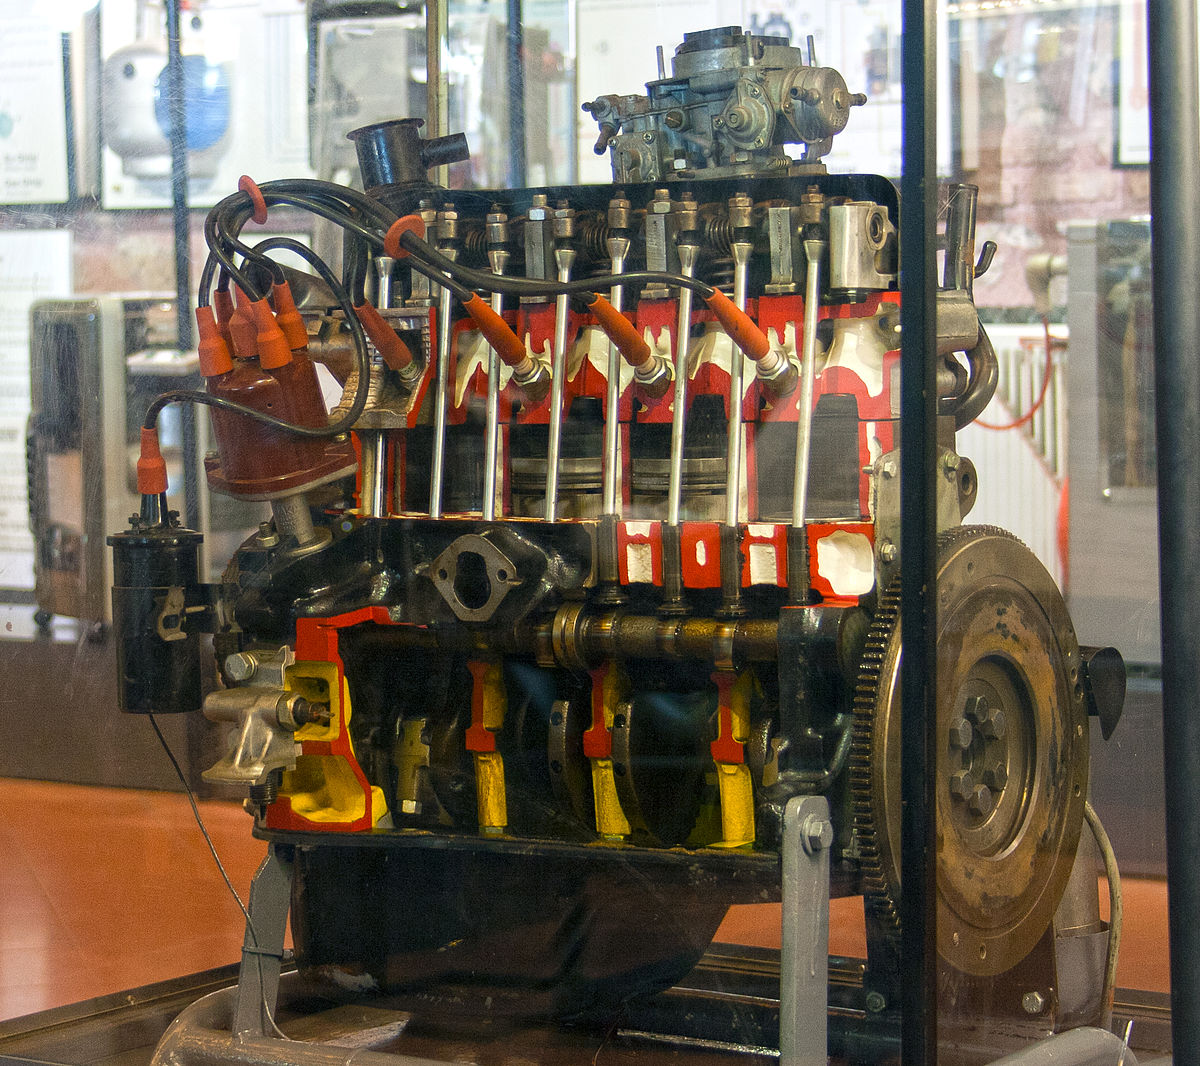 Fiat 124 Series Engine Wikipedia